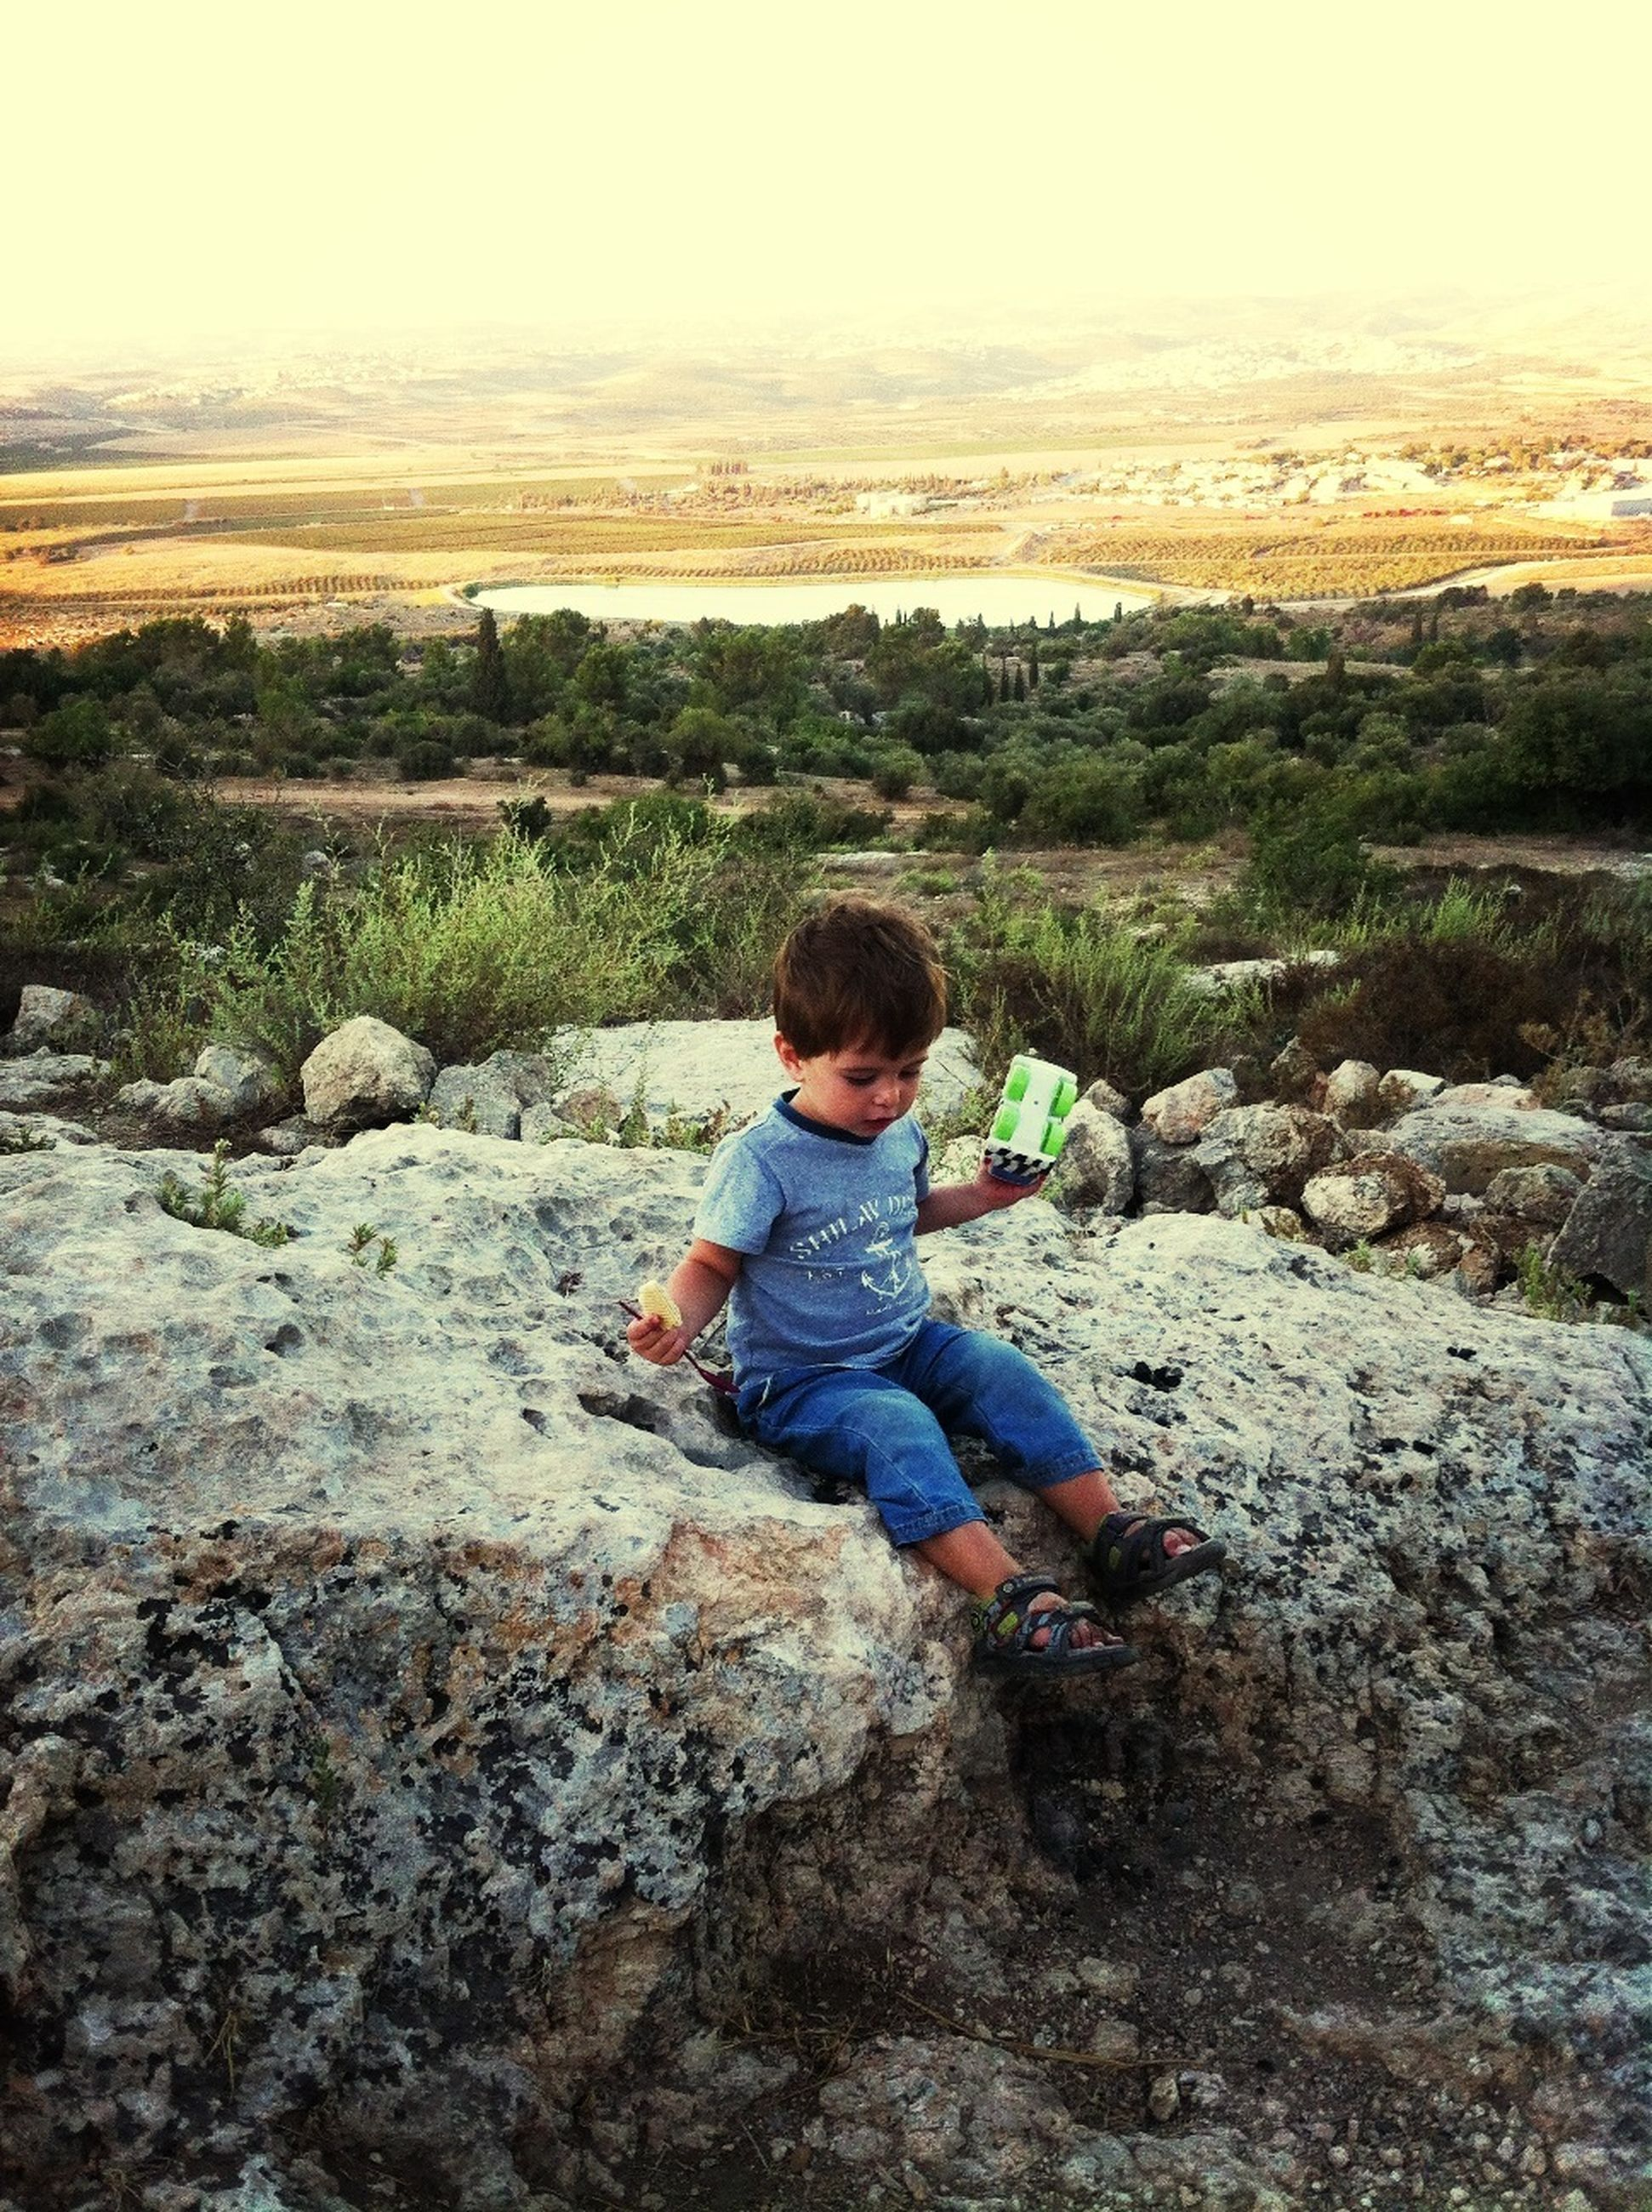 lifestyles, leisure activity, casual clothing, full length, person, childhood, elementary age, rock - object, looking at camera, boys, landscape, nature, portrait, standing, sitting, beauty in nature, sky, smiling